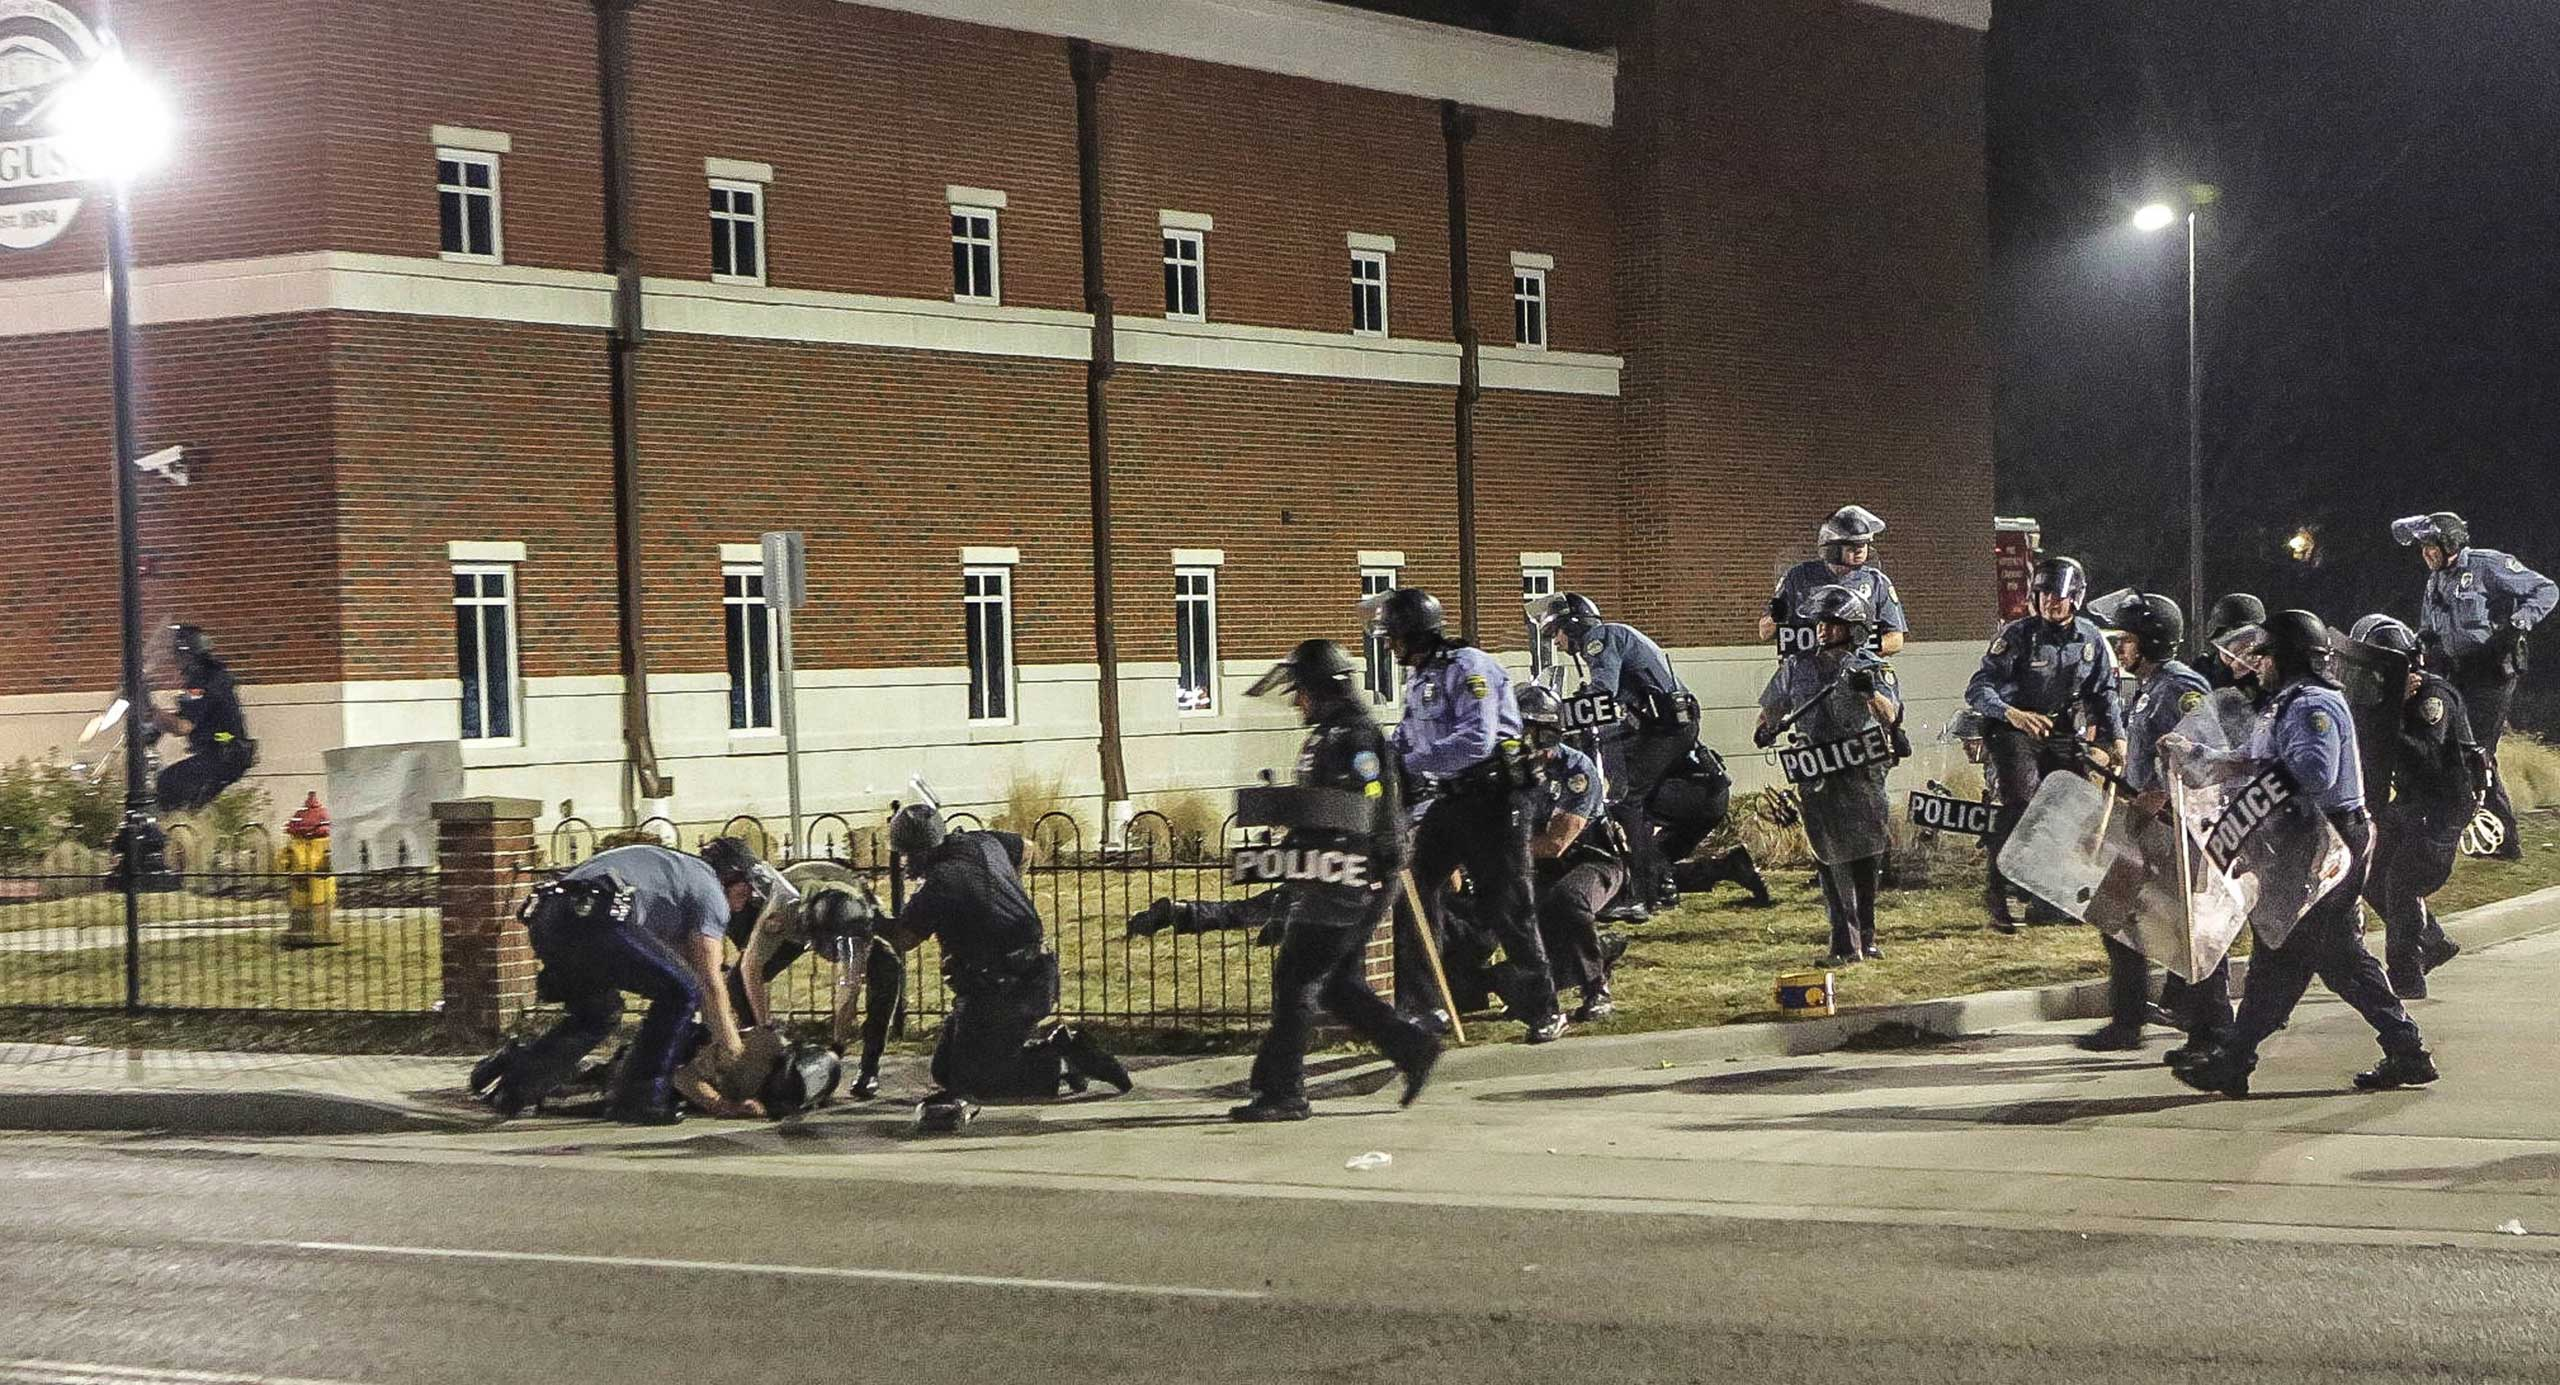 Police officers respond to a fellow officer hit by gunfire outside the Ferguson Police Headquarters in Ferguson, Mo. on March 12, 2014.